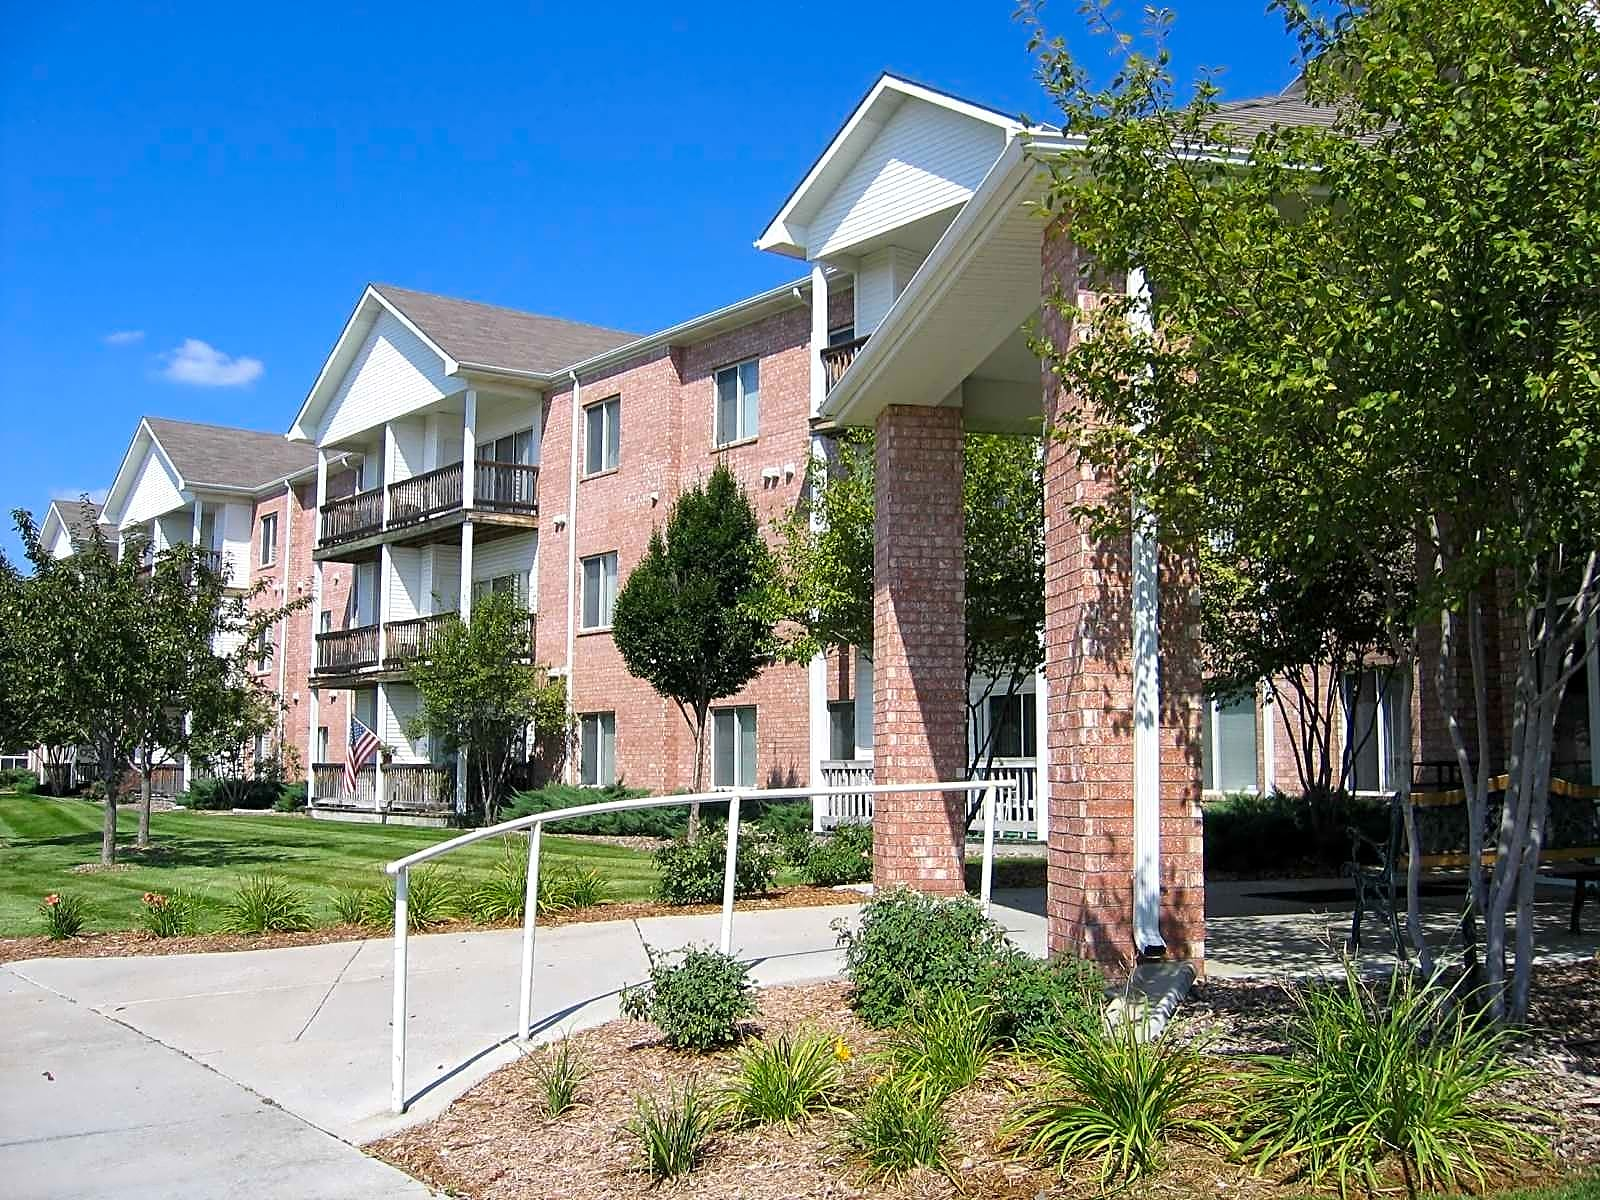 Apartments Near University of Nebraska Holmes Lake by Broadmoor for University of Nebraska - Lincoln Students in Lincoln, NE